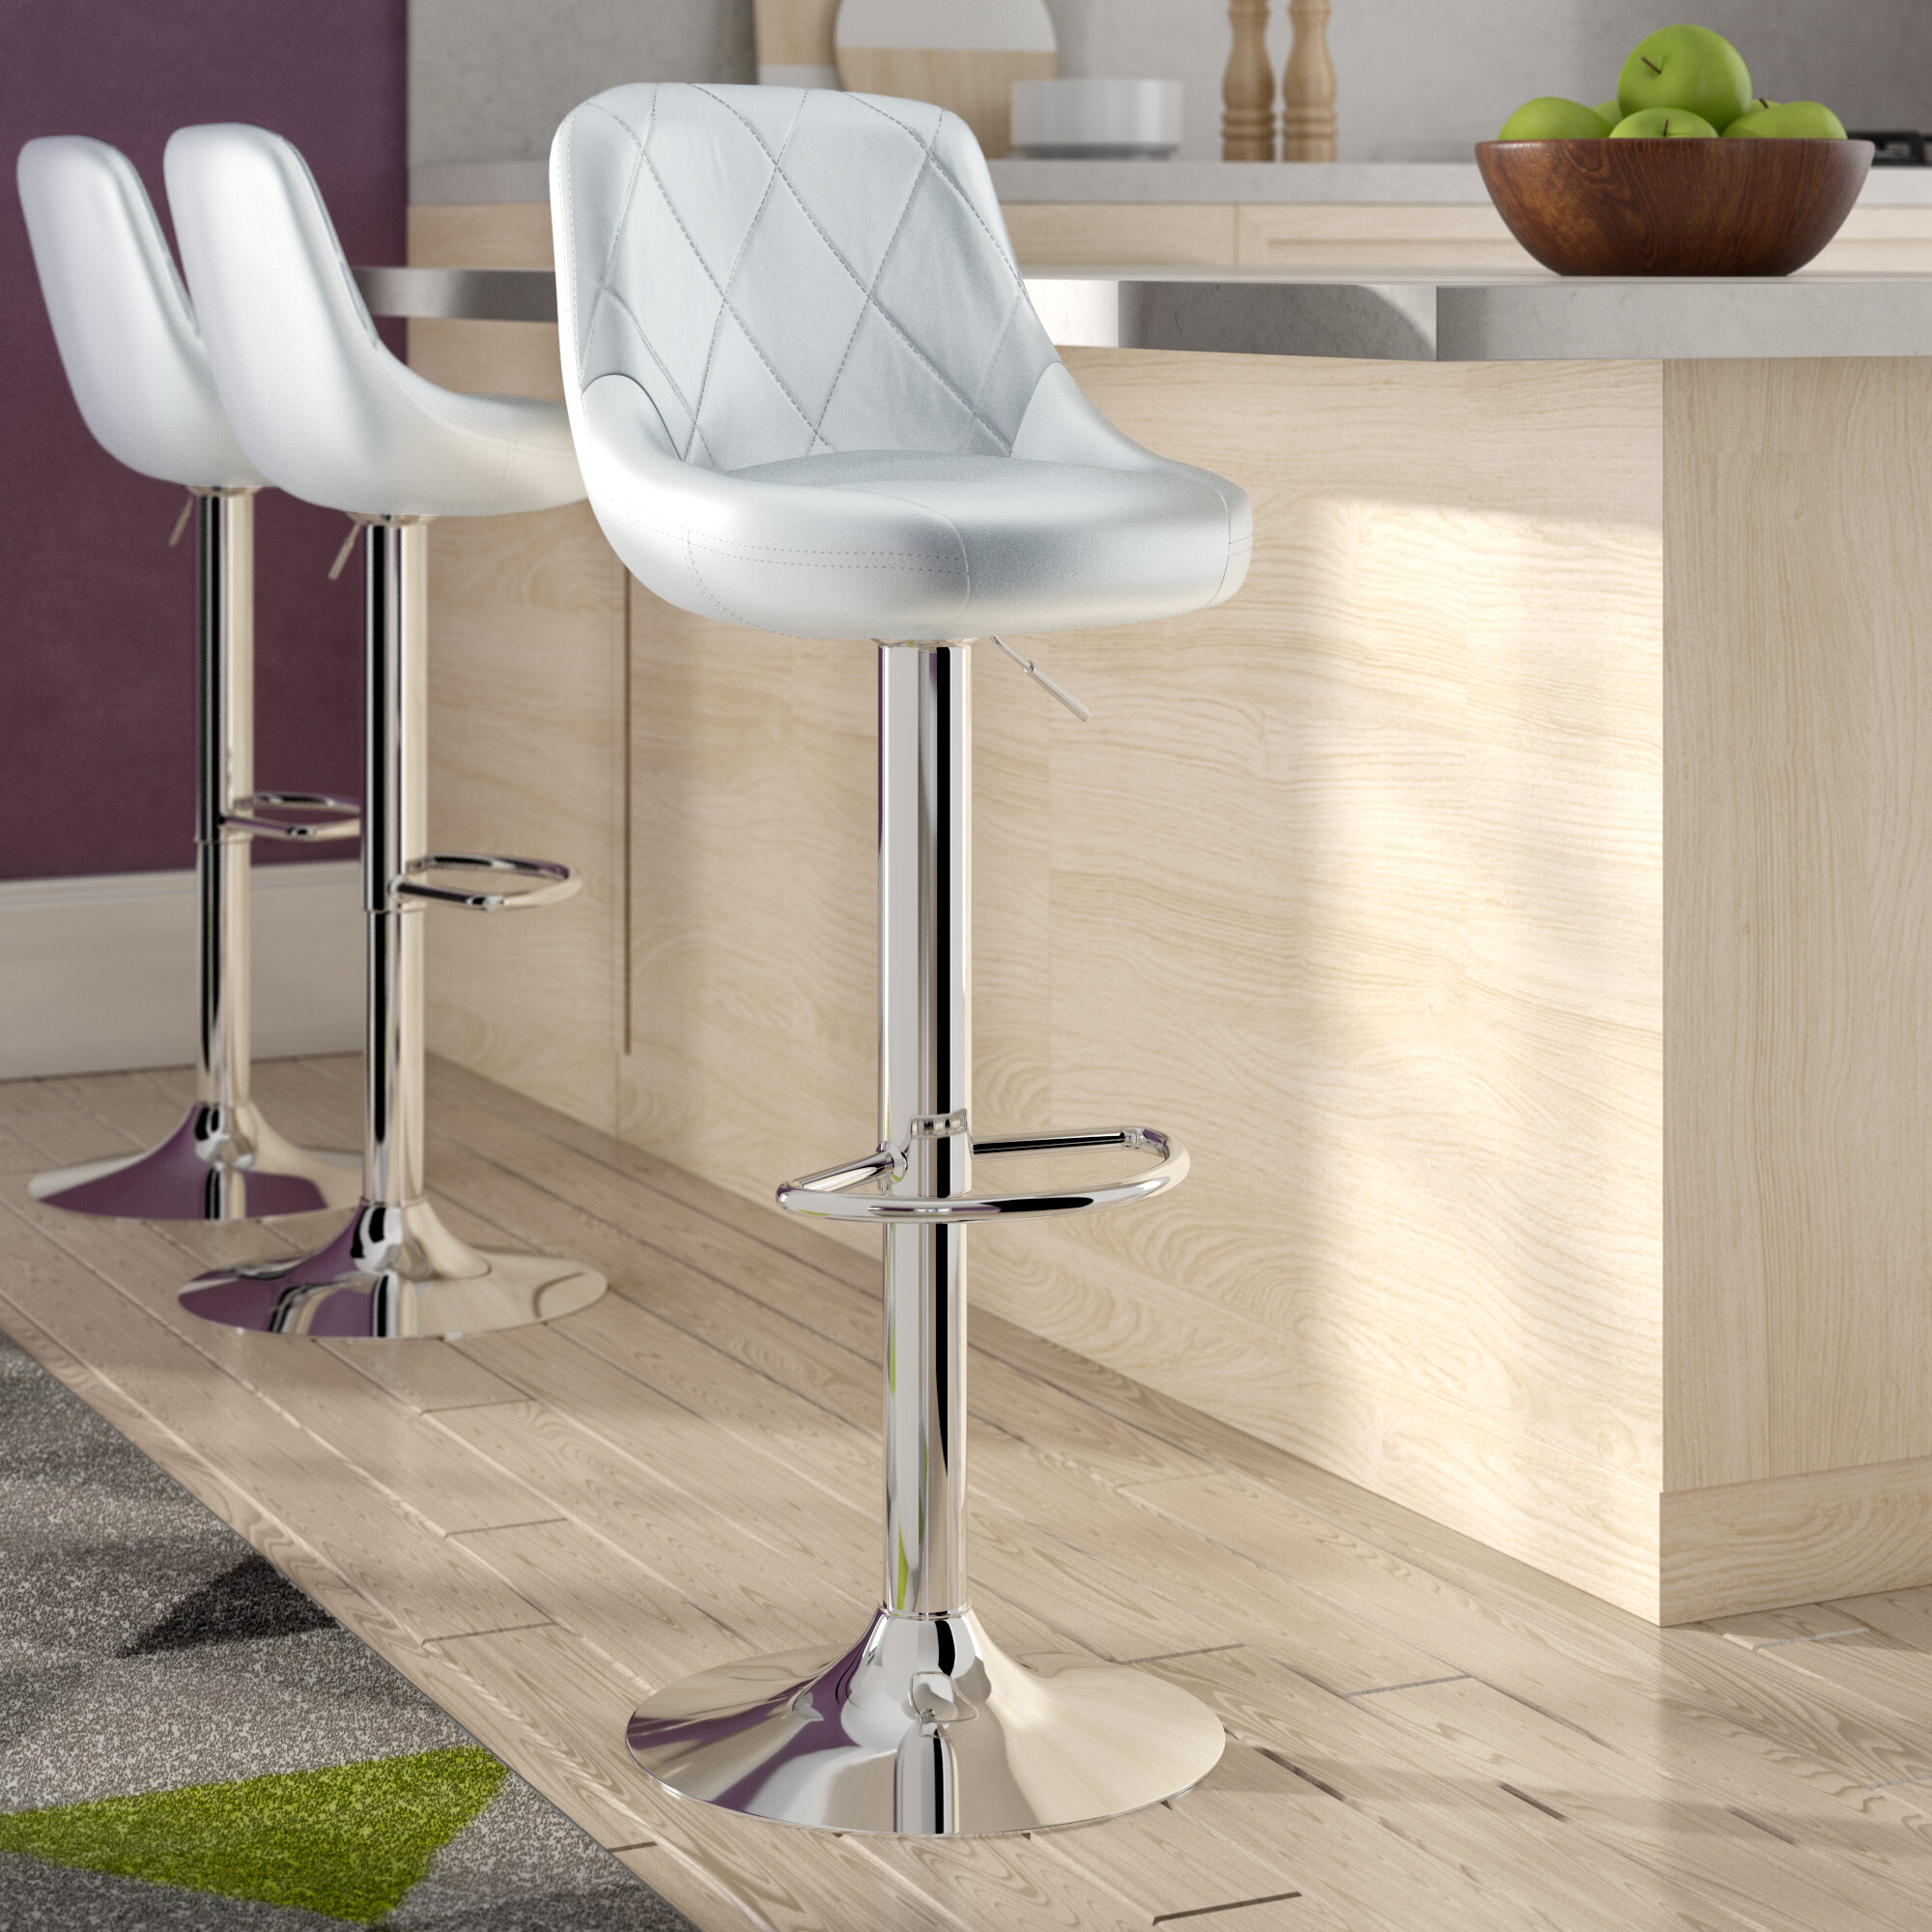 Adjustable Height Faux Leather Bar Stools Counter Stools You Ll Love In 2021 Wayfair